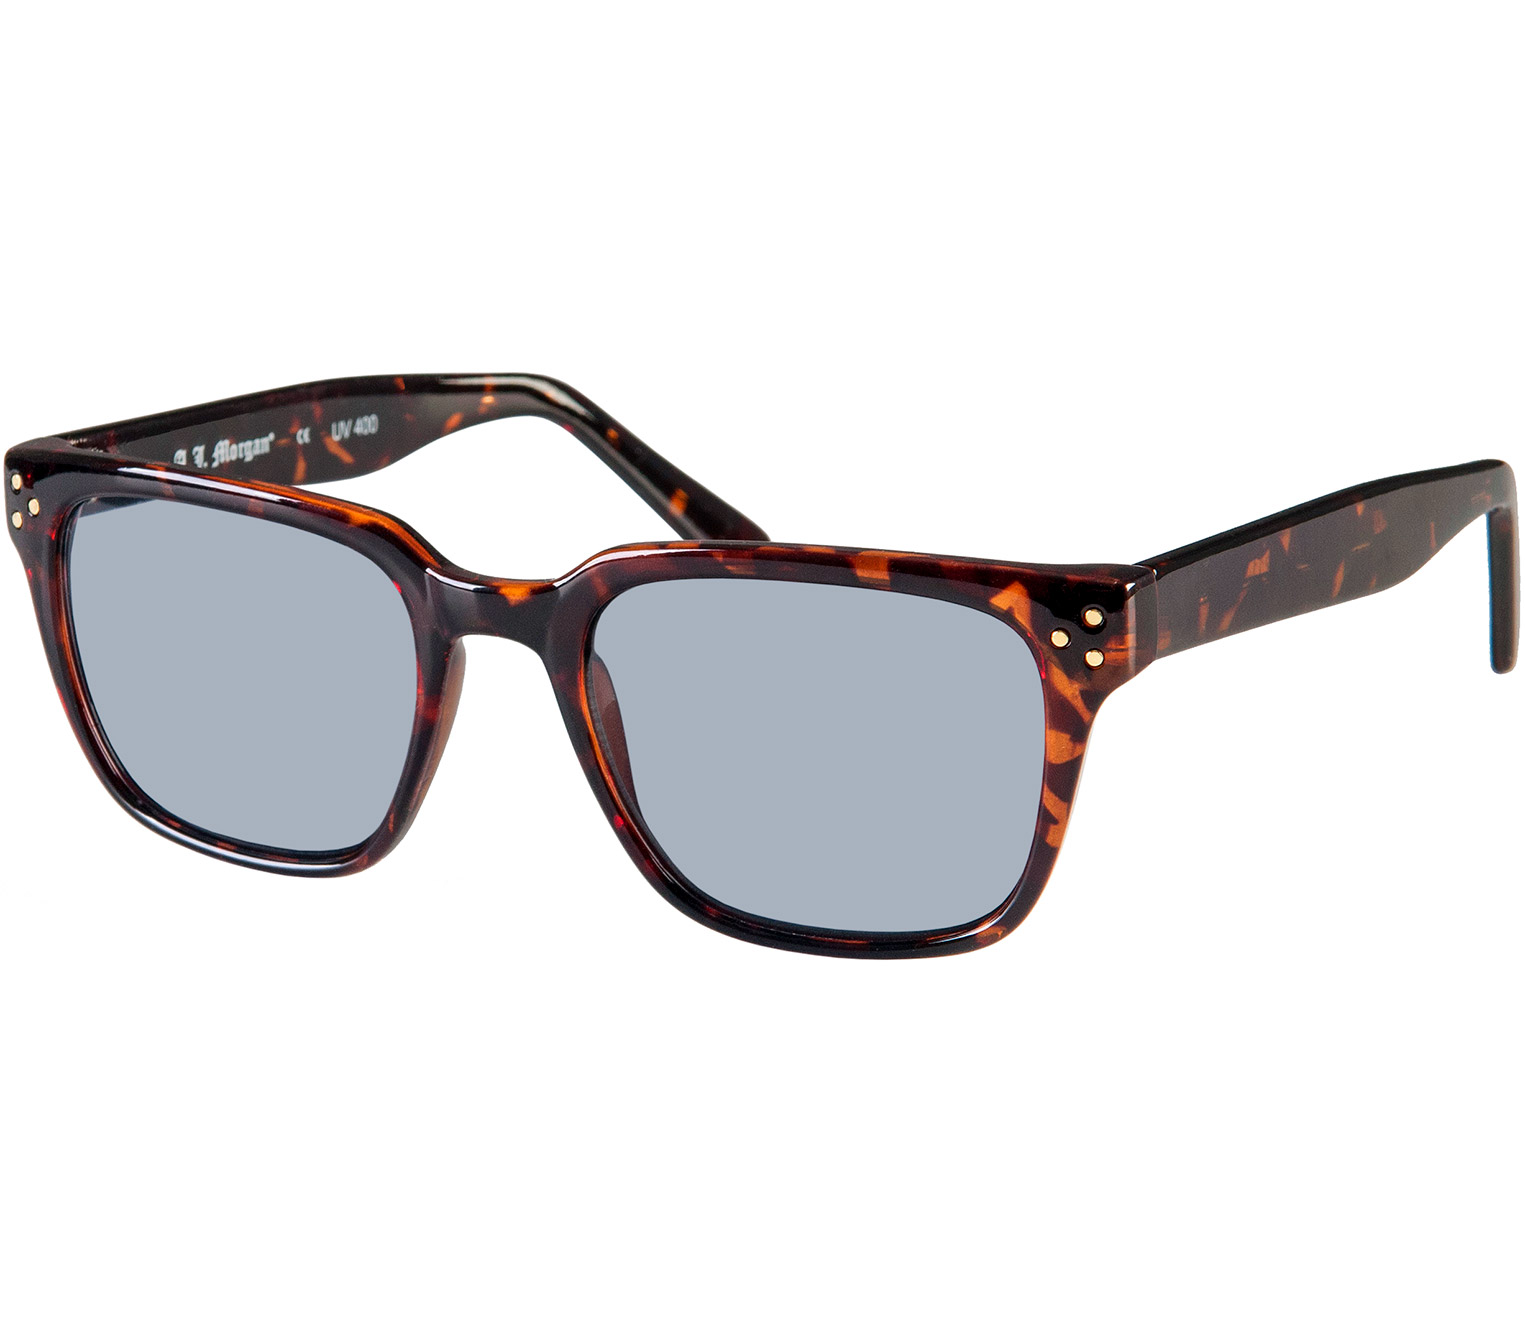 Main Image (Angle) - Morgan (Tortoiseshell) Retro Sun Readers